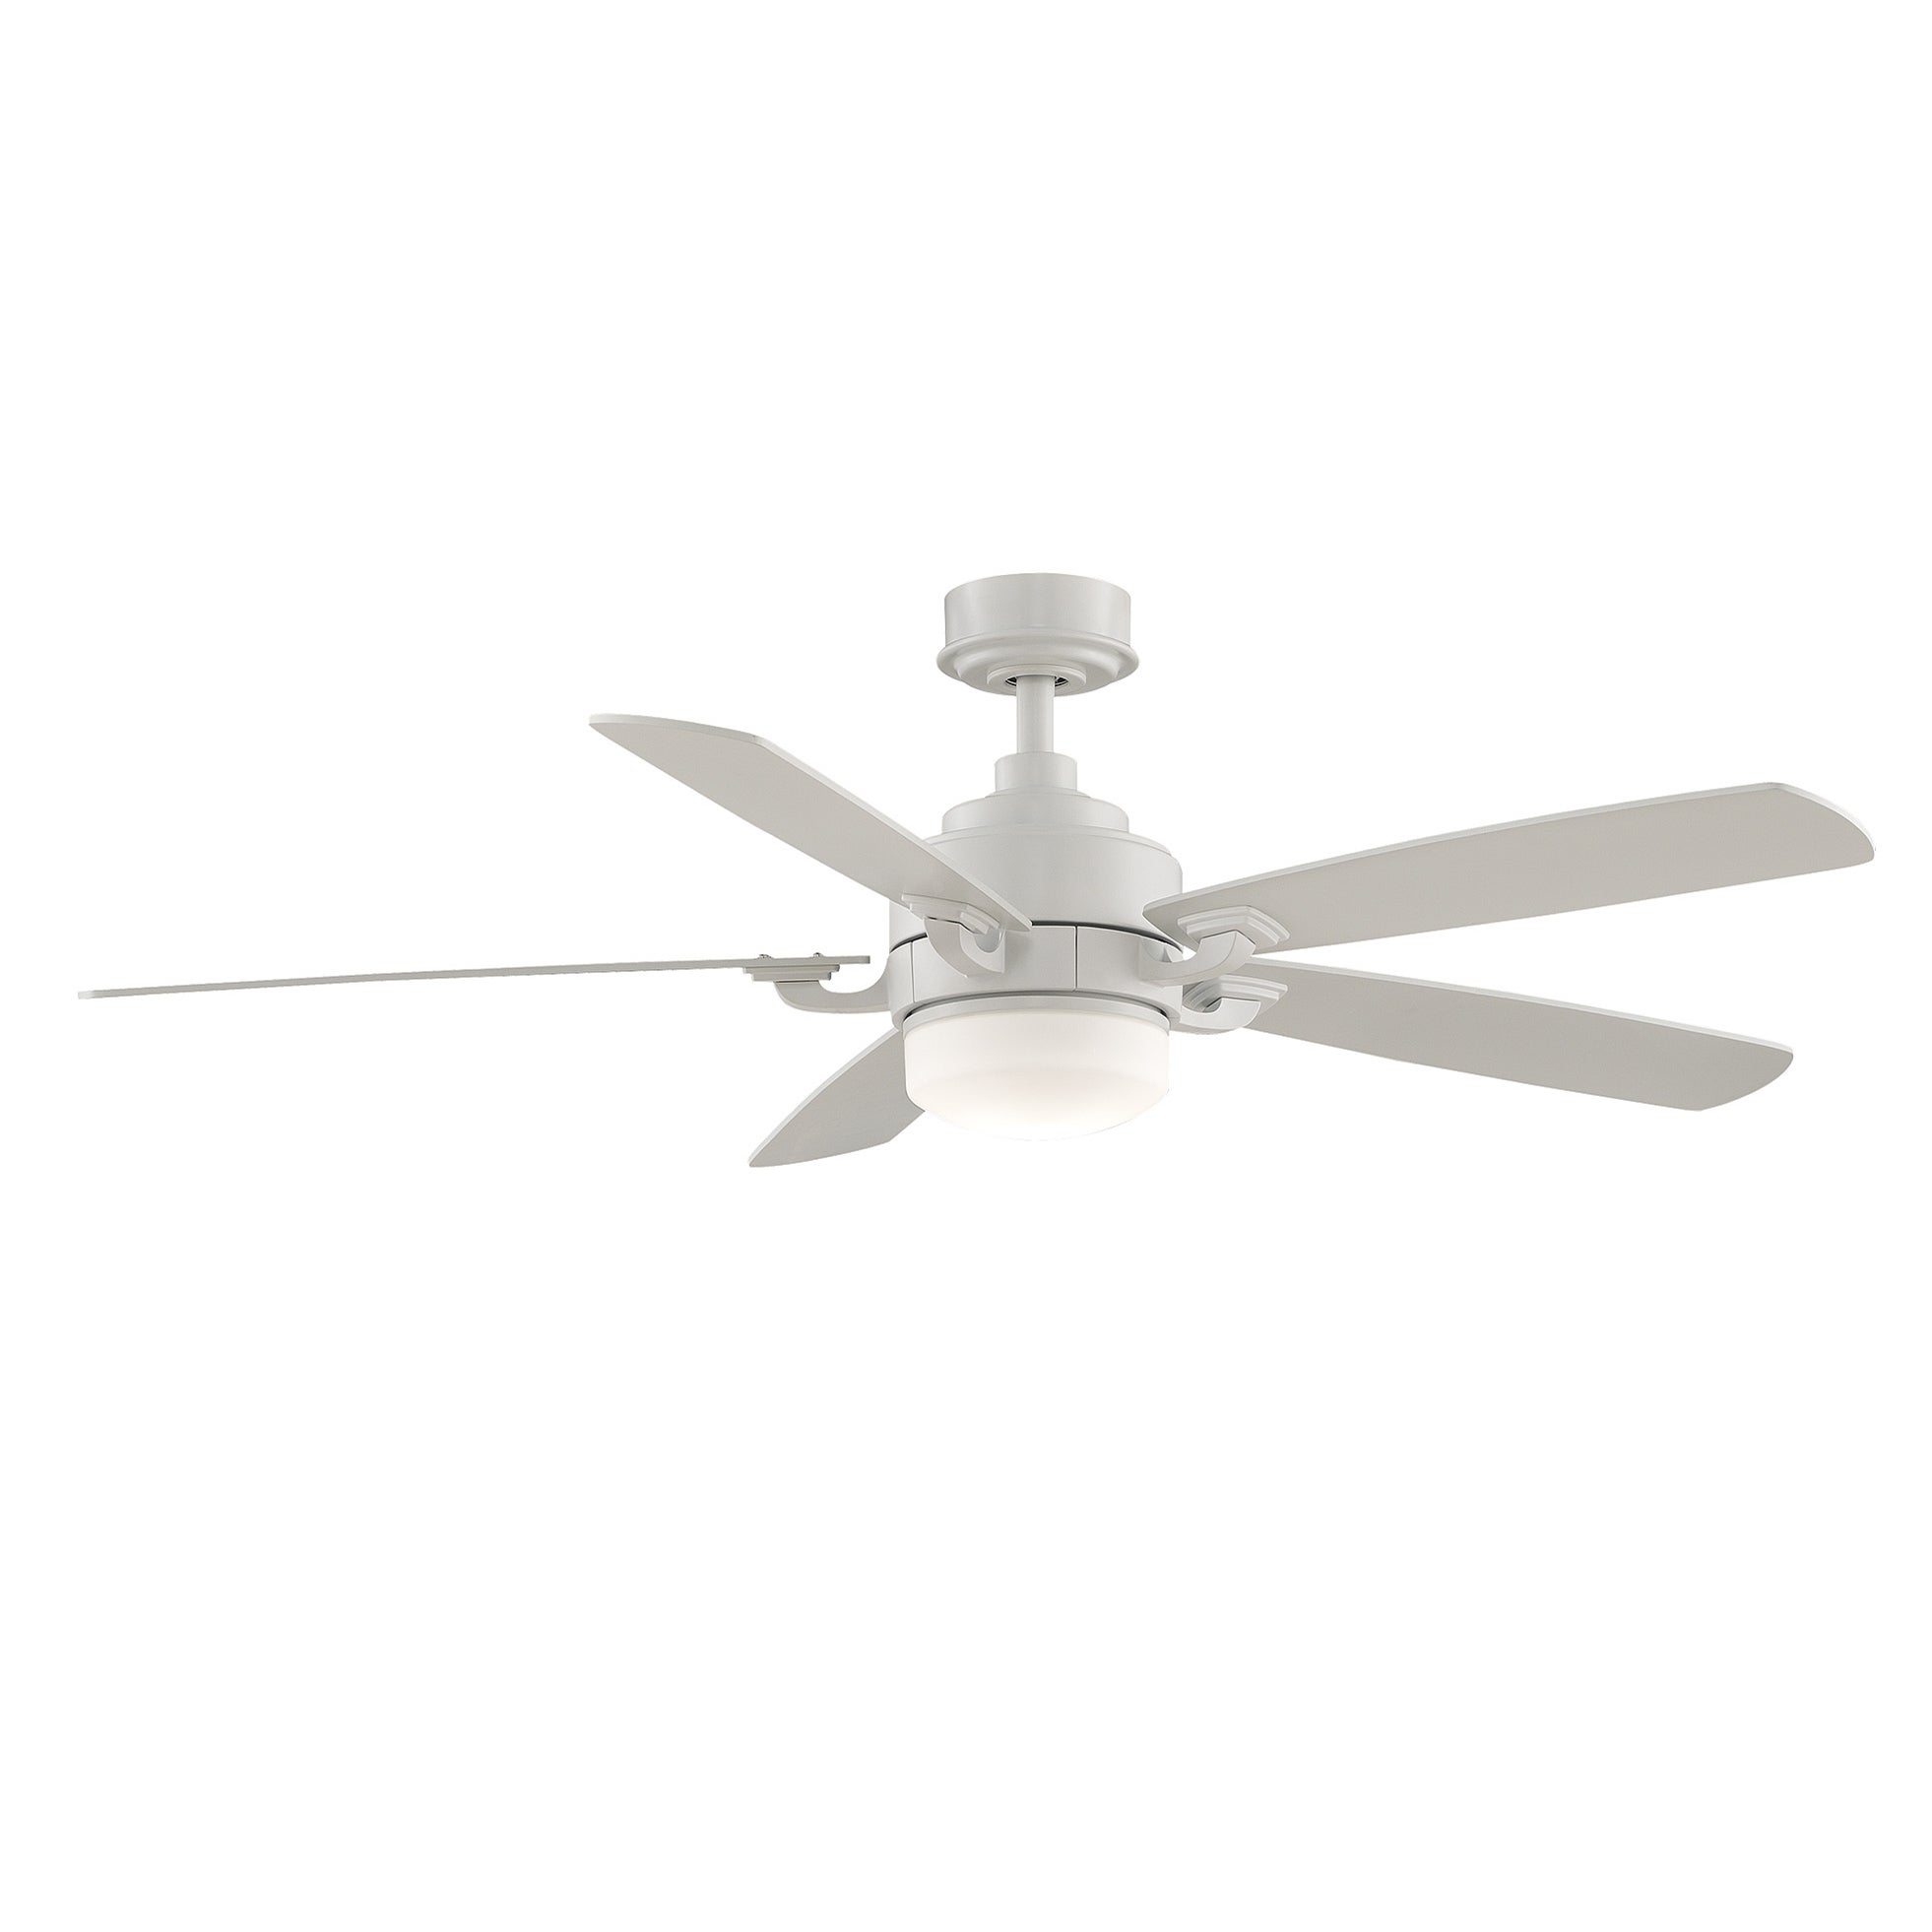 Fanimation Benito 52-inch Matte White 1-light Ceiling Fan at Sears.com